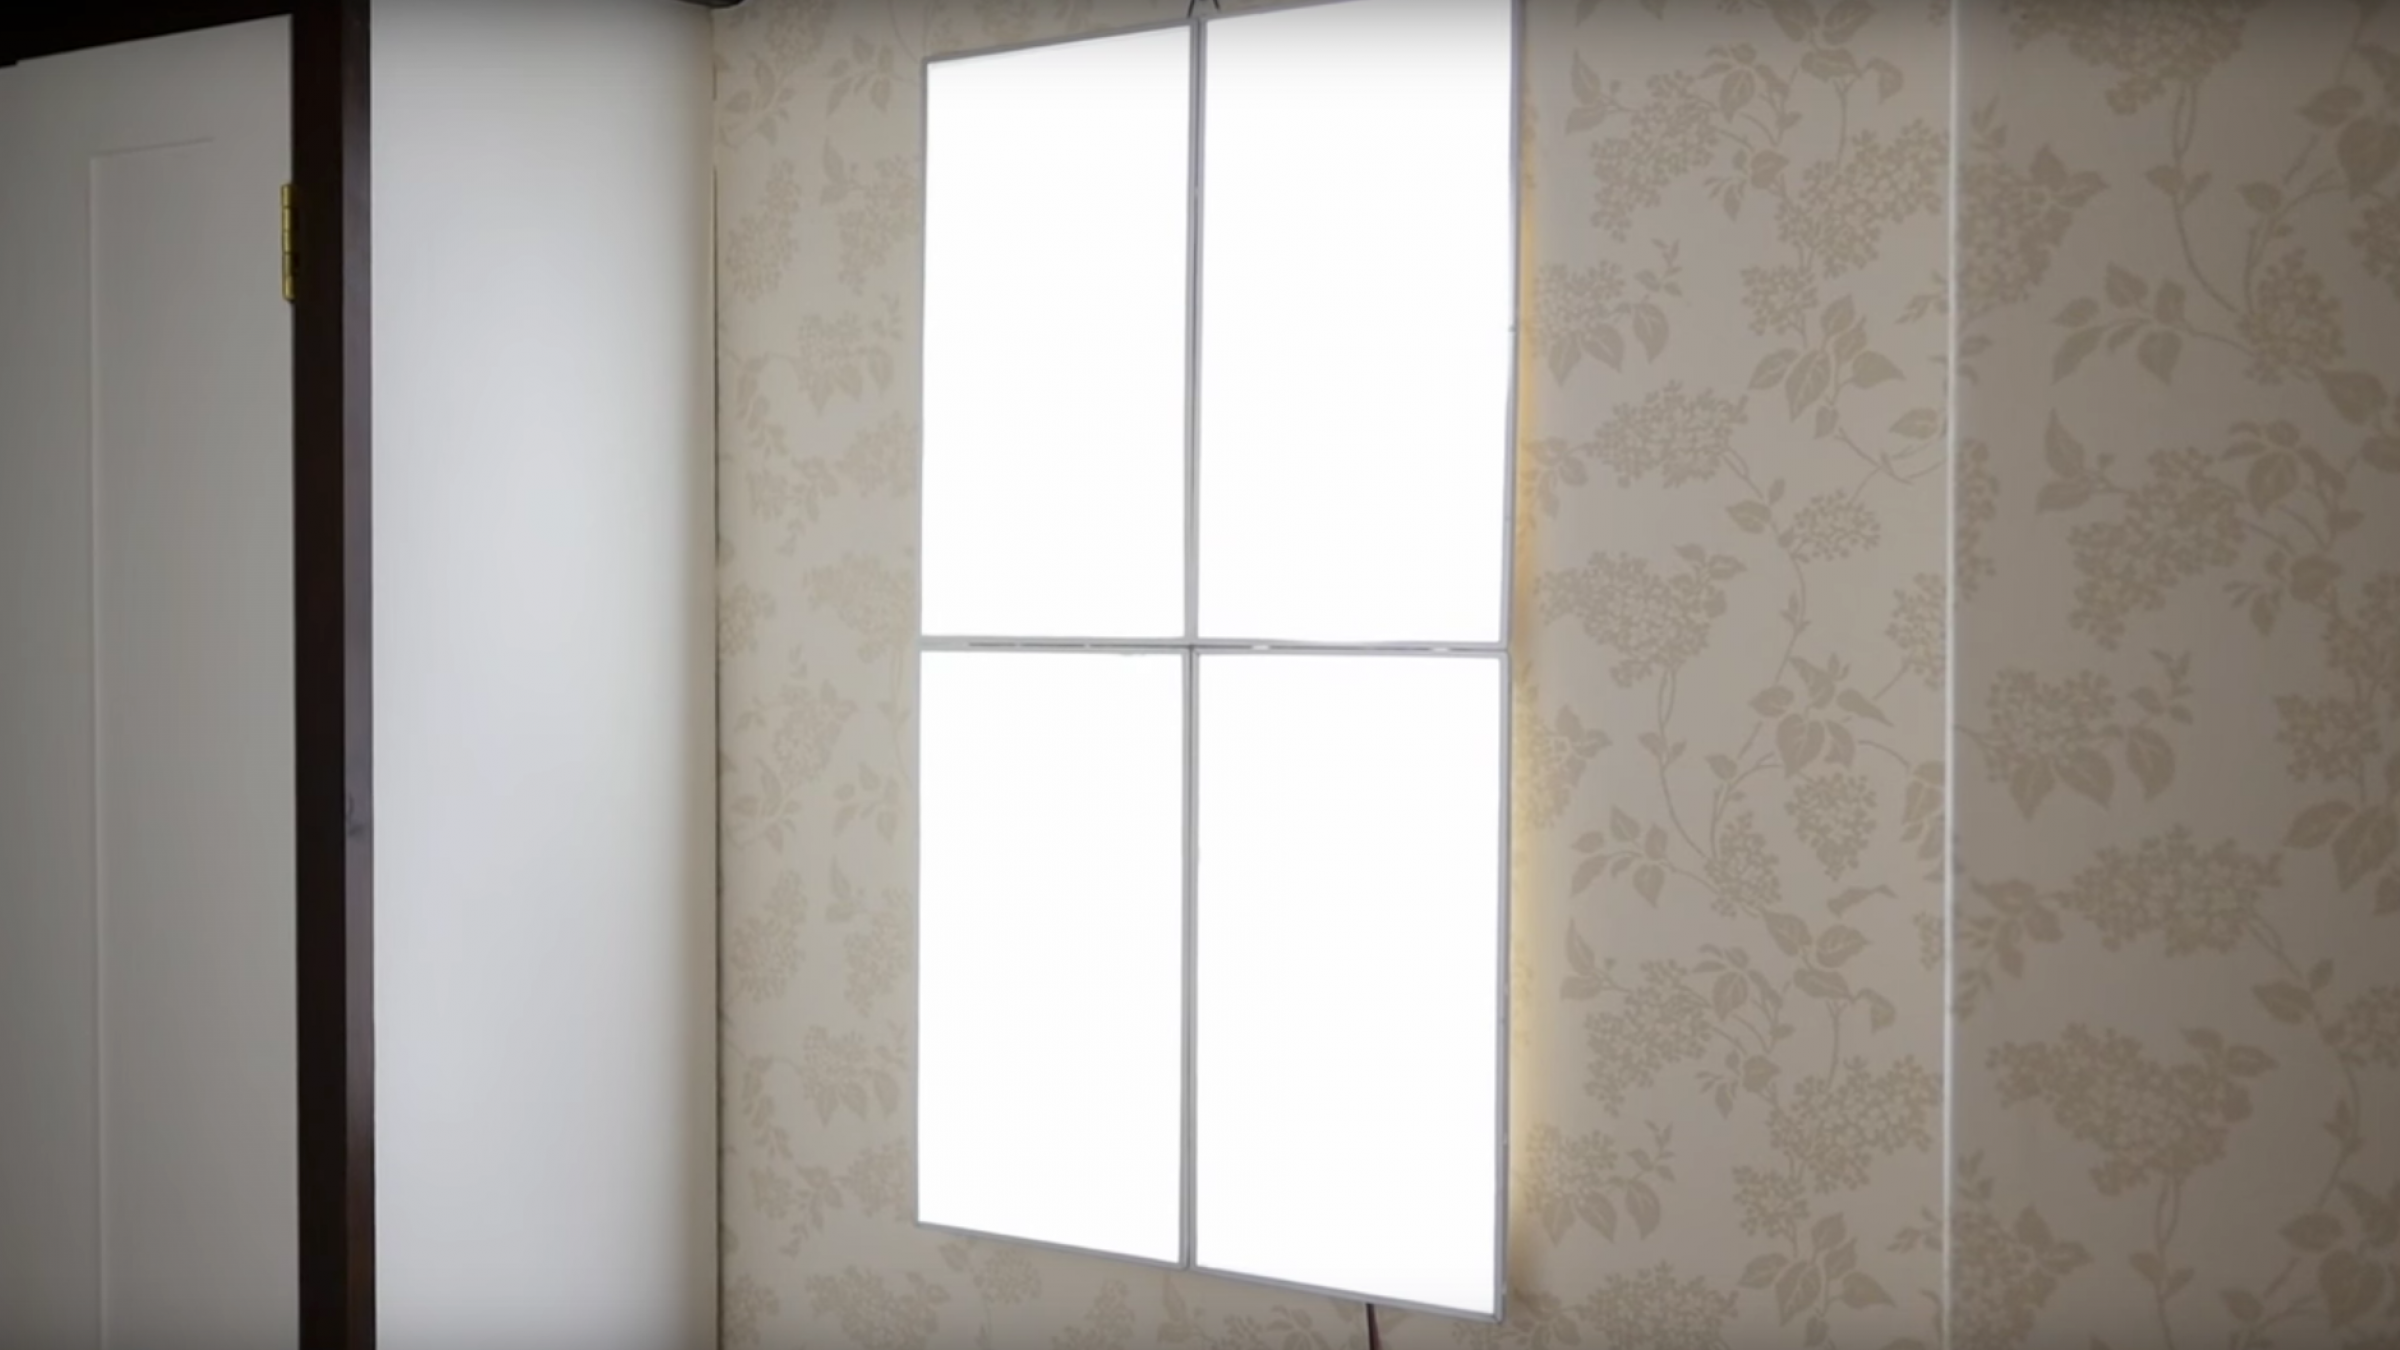 turn 4 old laptop screens into a fake window light panel with this